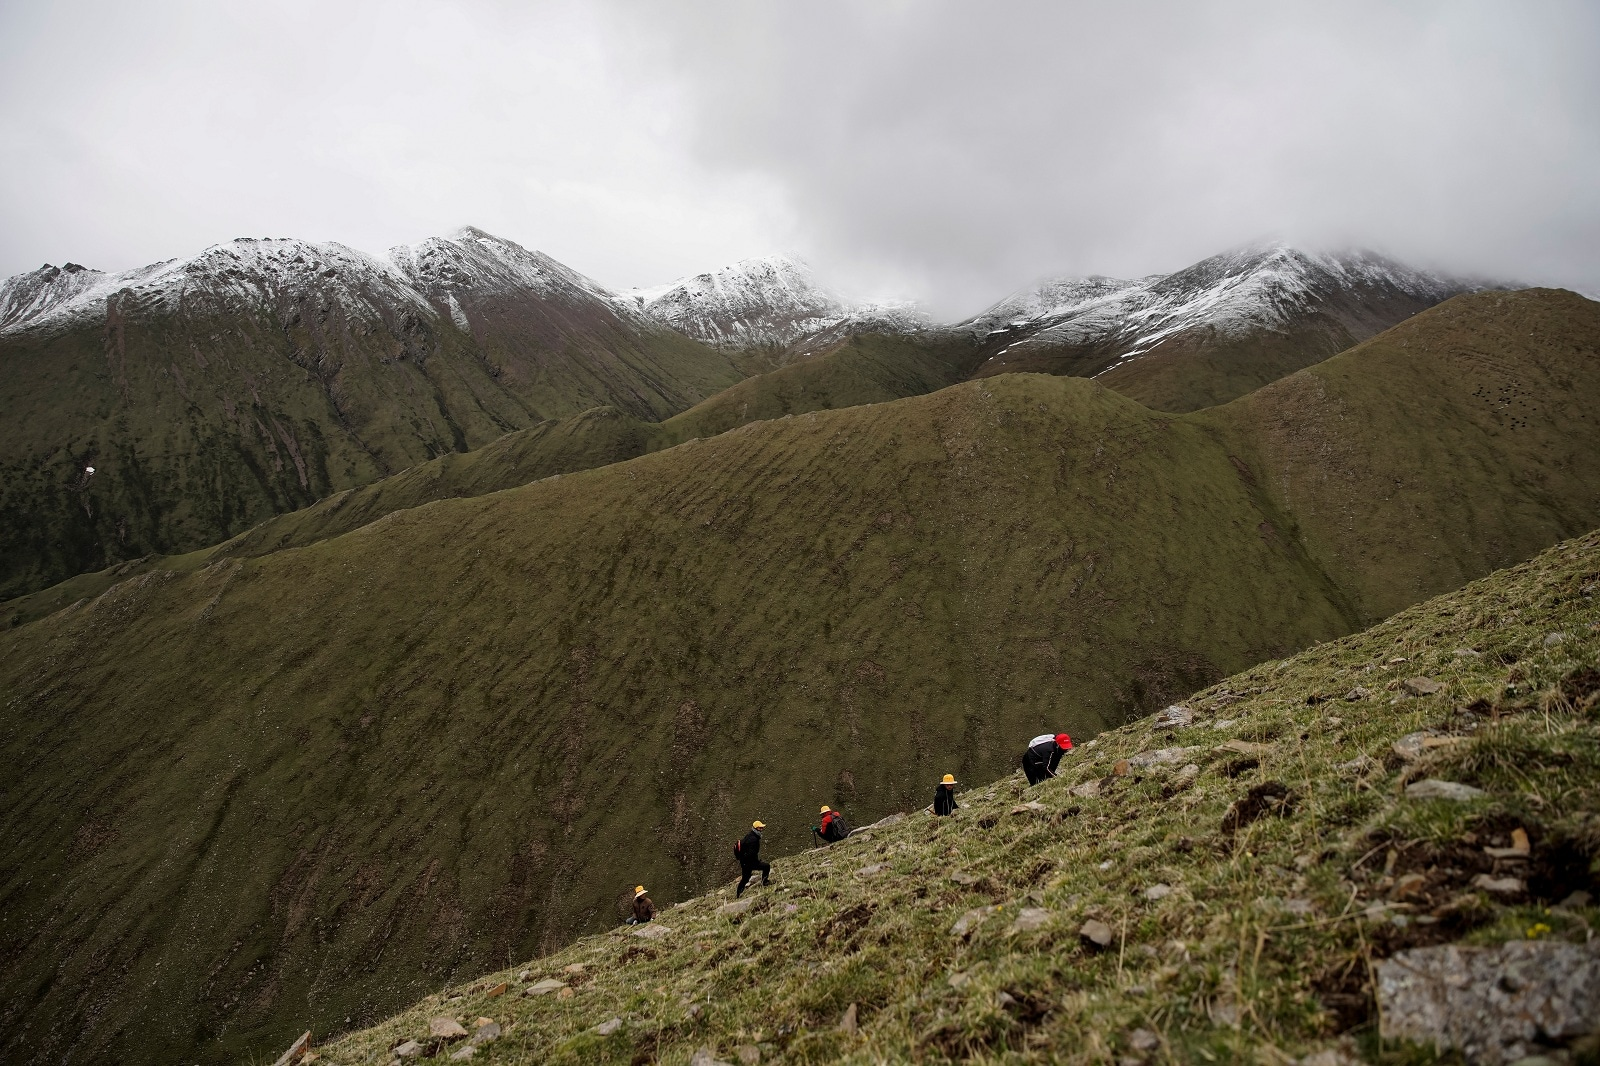 Cordyceps pickers scan the ground on a mountain to find Ophiocordyceps sinensis, a fungus believed to possess aphrodisiac and medicinal powers, in the Amne Machin range in China's western Qinghai province, June 8, 2019. Demand for the highly prized cordyceps has increased sharply in the last decade as an emerging Chinese middle class seeks it to cure everything from kidney disorders to impotence. REUTERS/Aly Song